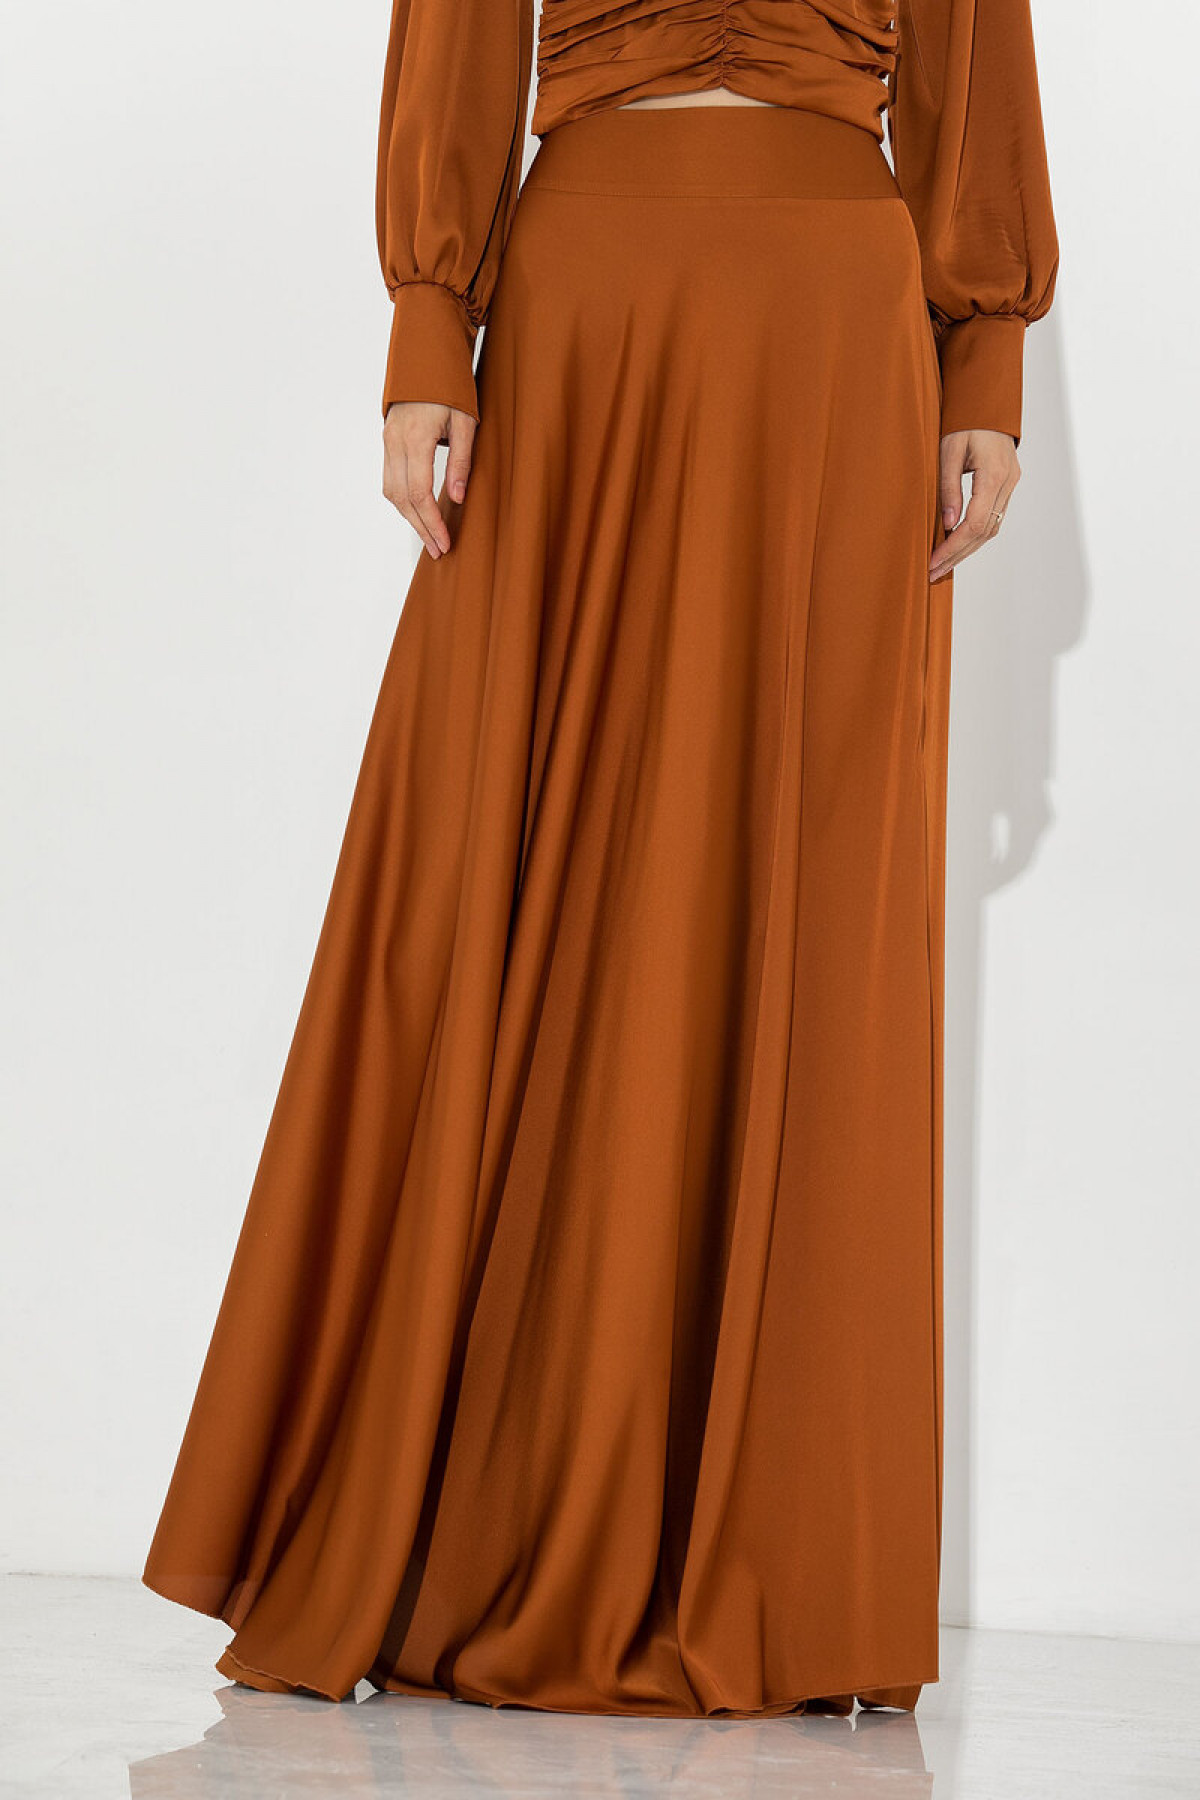 CARAMEL SATIN MAXI SKIRT